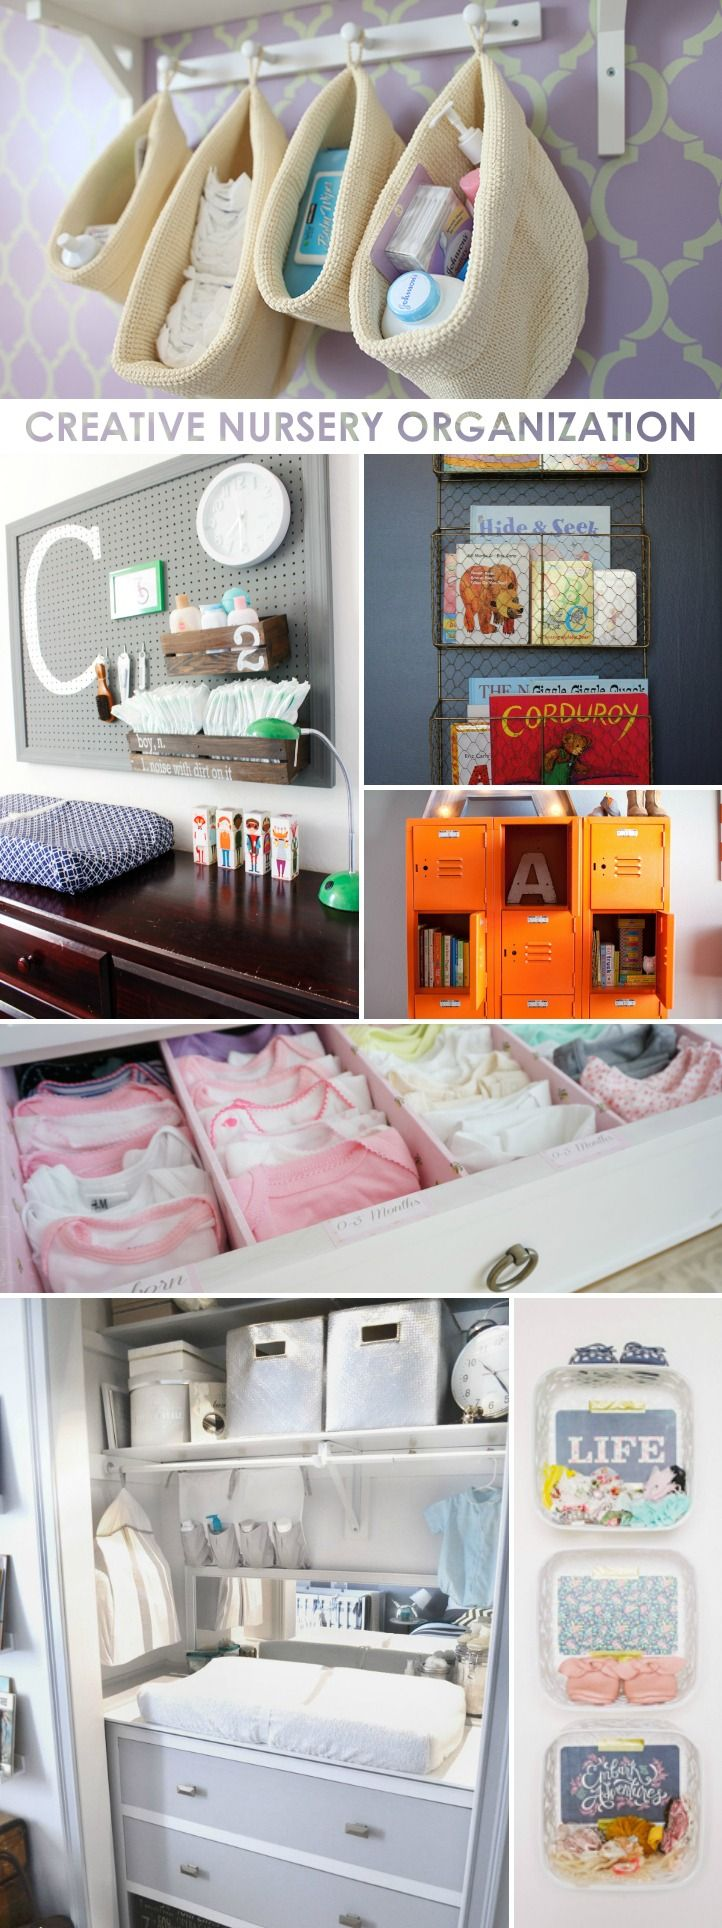 235 best images about nursery organization ideas for Creative organization